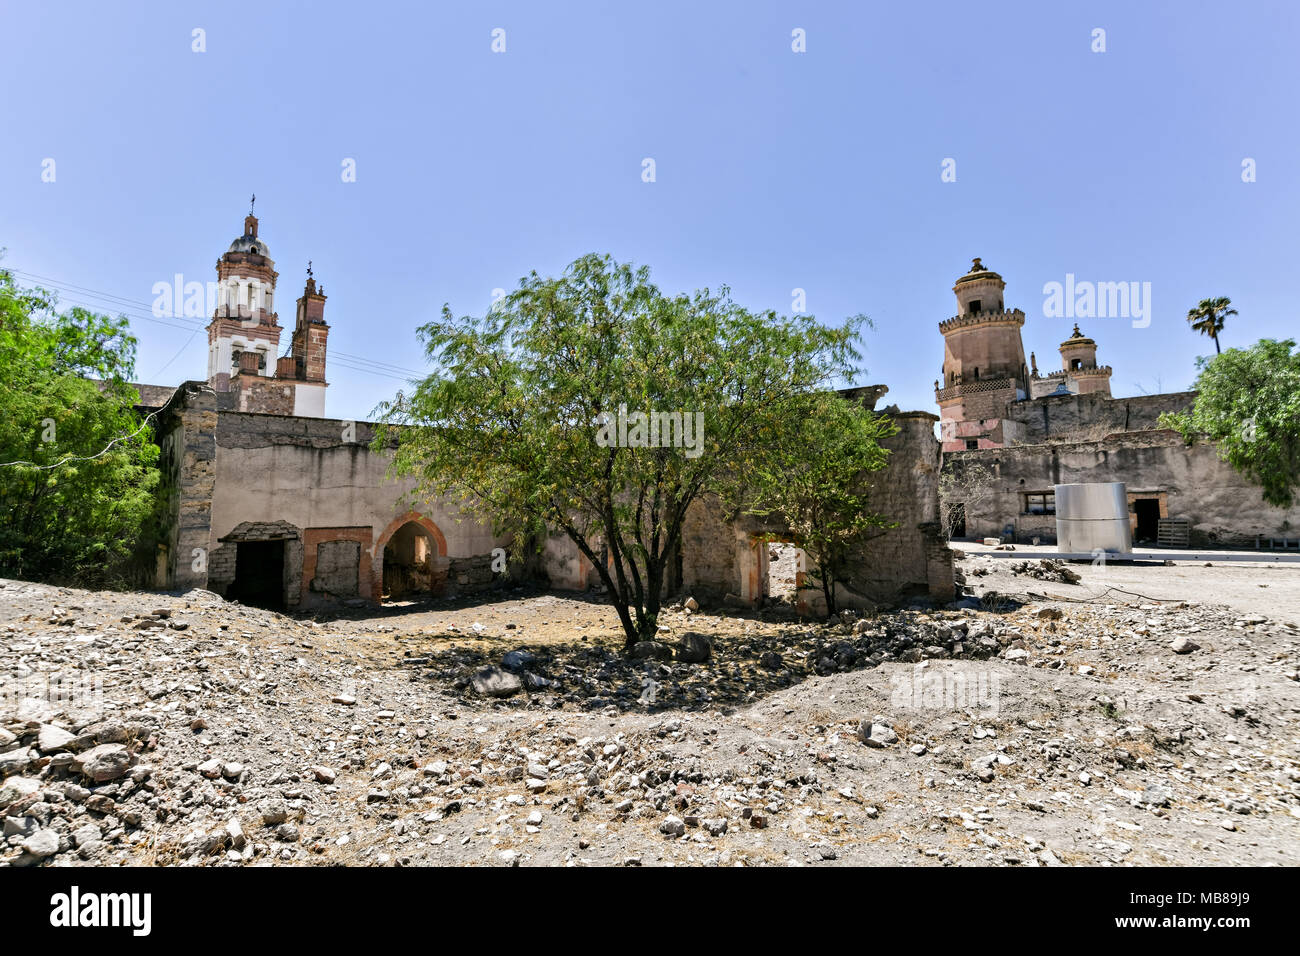 The ruins of a courtyard looking toward the front at the fading Hacienda de Jaral de Berrio in Jaral de Berrios, Guanajuato, Mexico. The abandoned Jaral de Berrio hacienda was once the largest in Mexico and housed over 6,000 people on the property and is credited with creating Mescal. - Stock Image